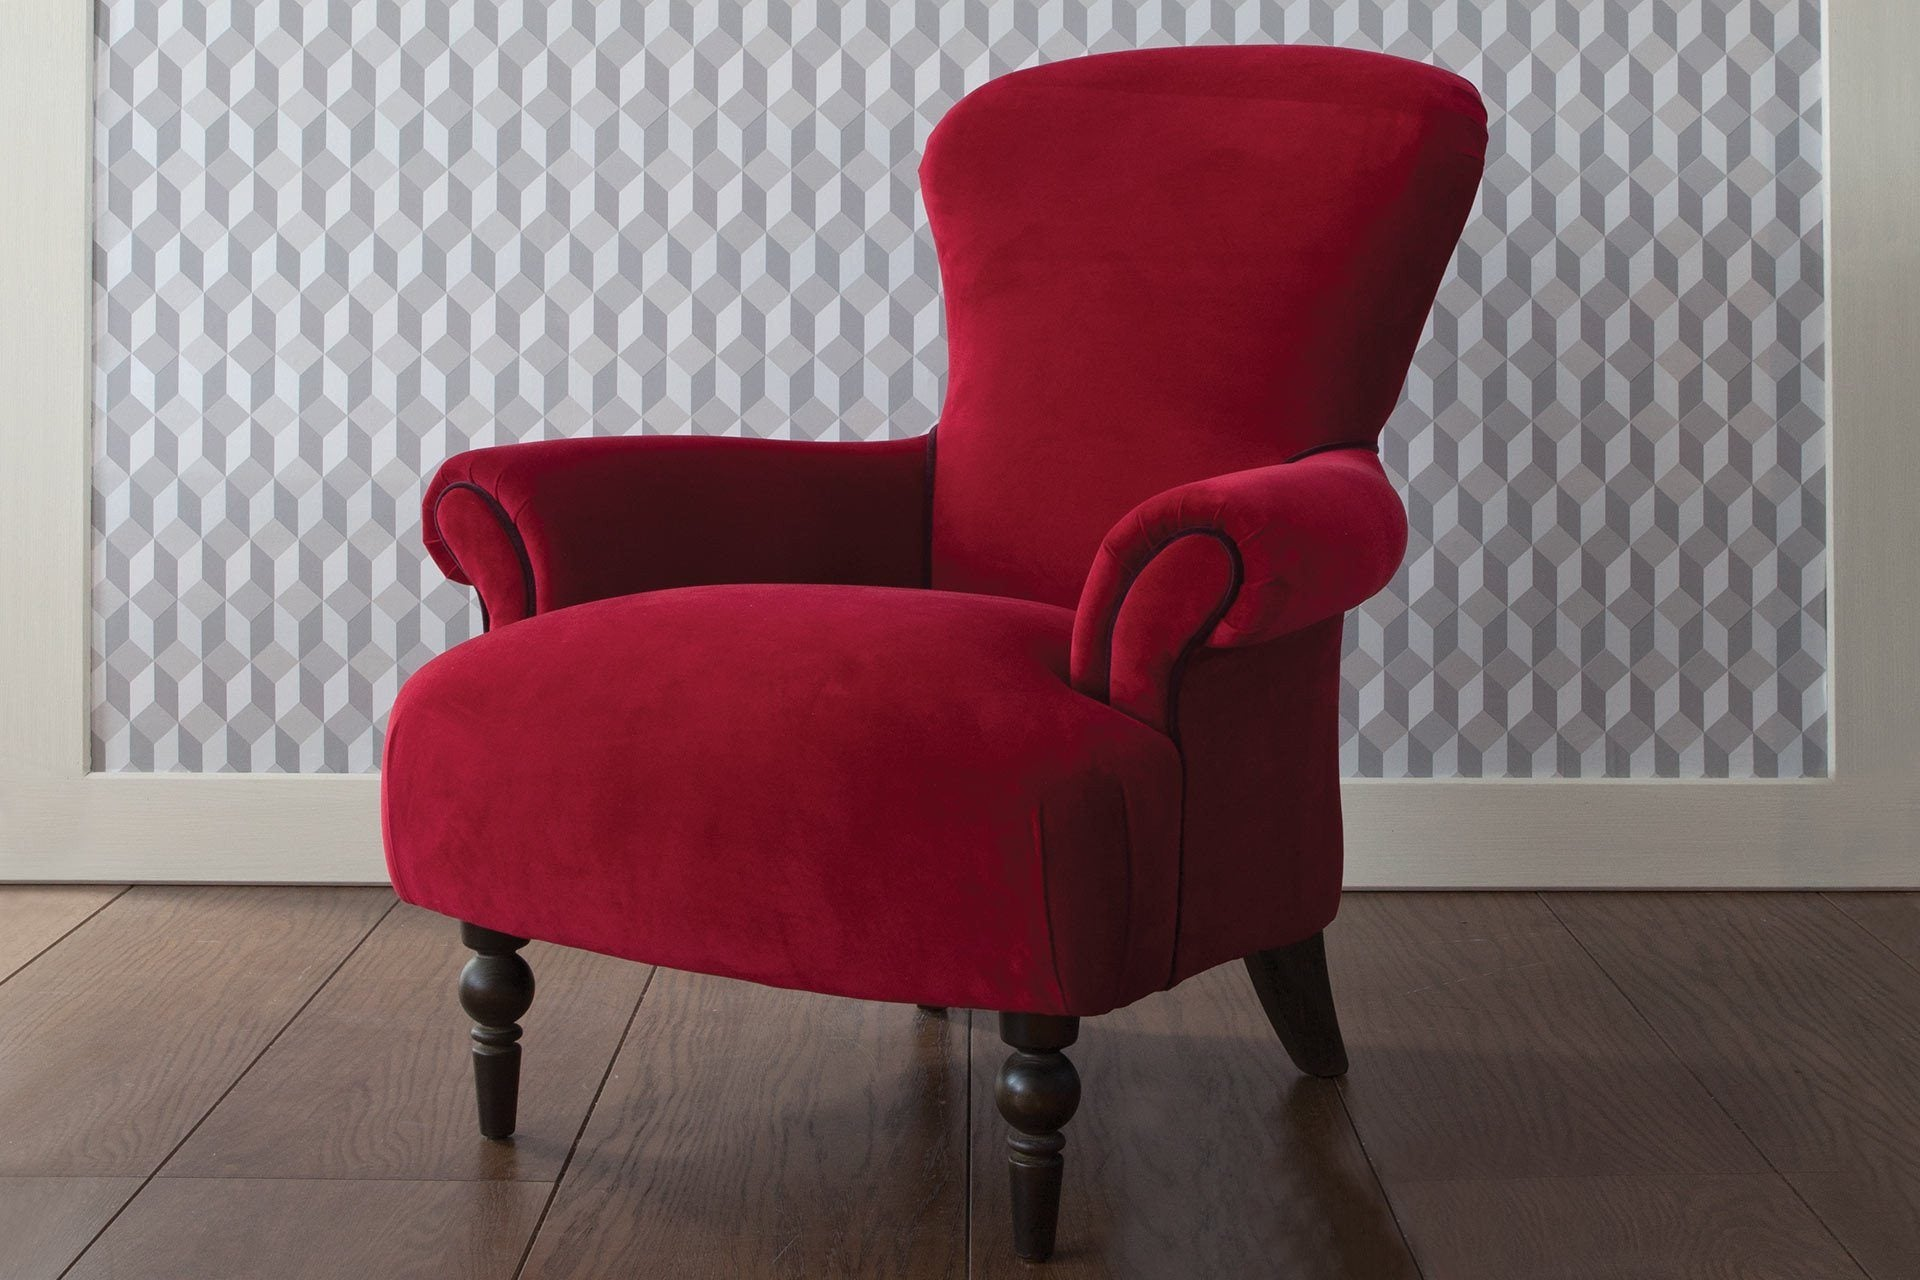 Ritzy Velvet Fabric In Scarlet Colour With Cassis Piping